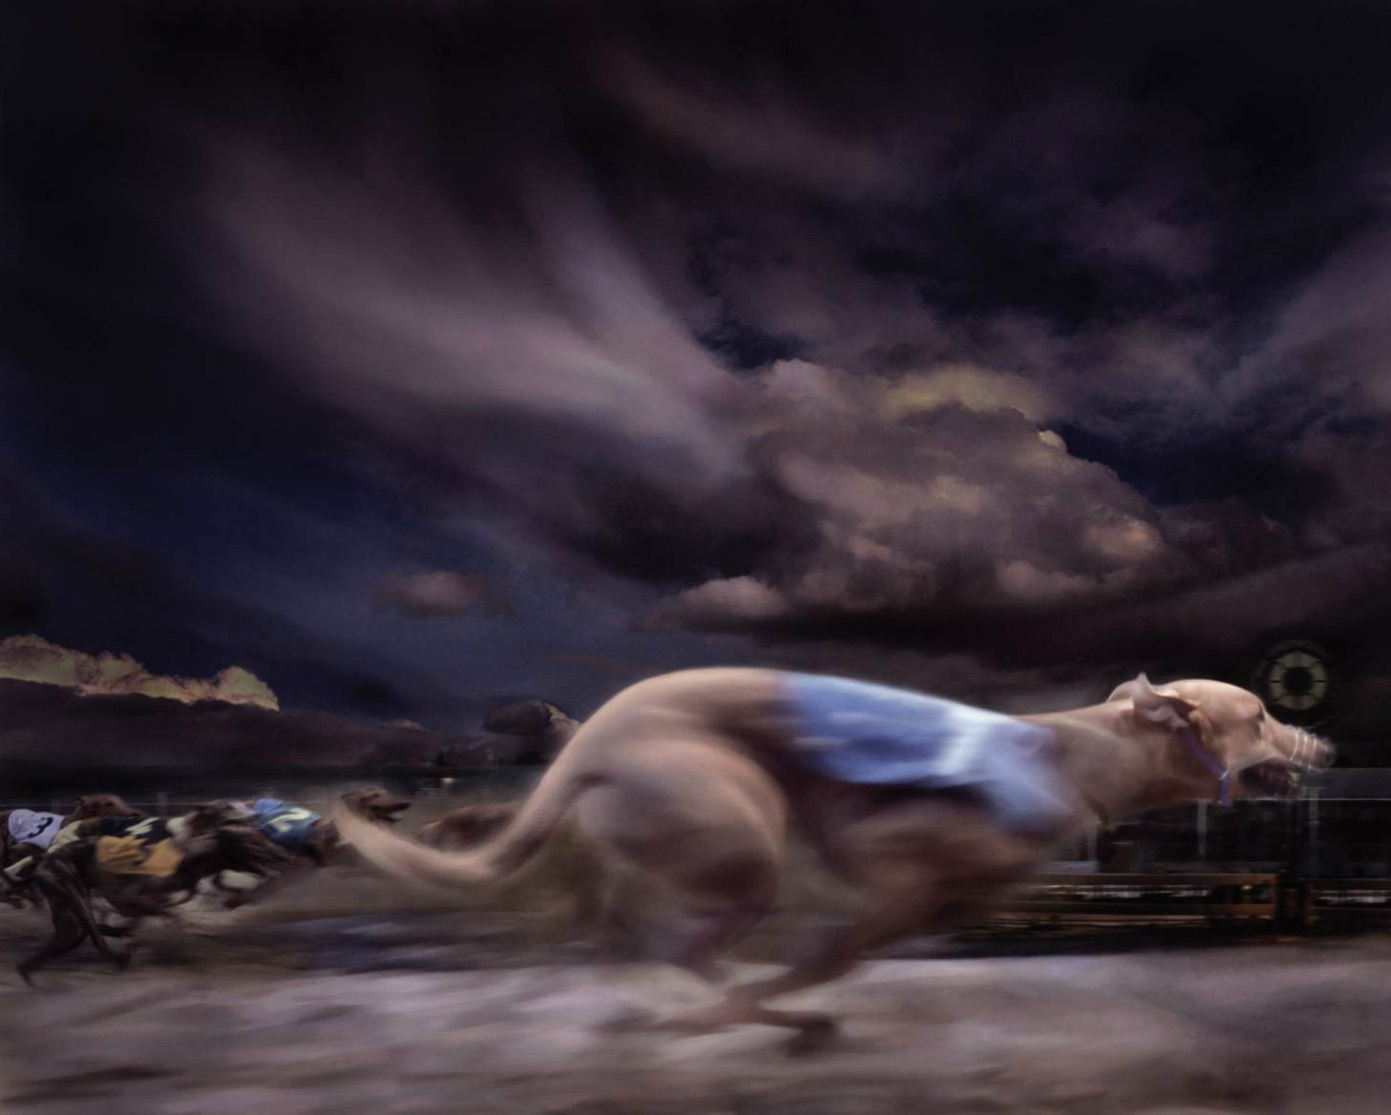 Greyhound racing, winner passing post (blurred motion) Latin name for all domestic dogs is Canis familiaris. Copyright Gandee Vasan